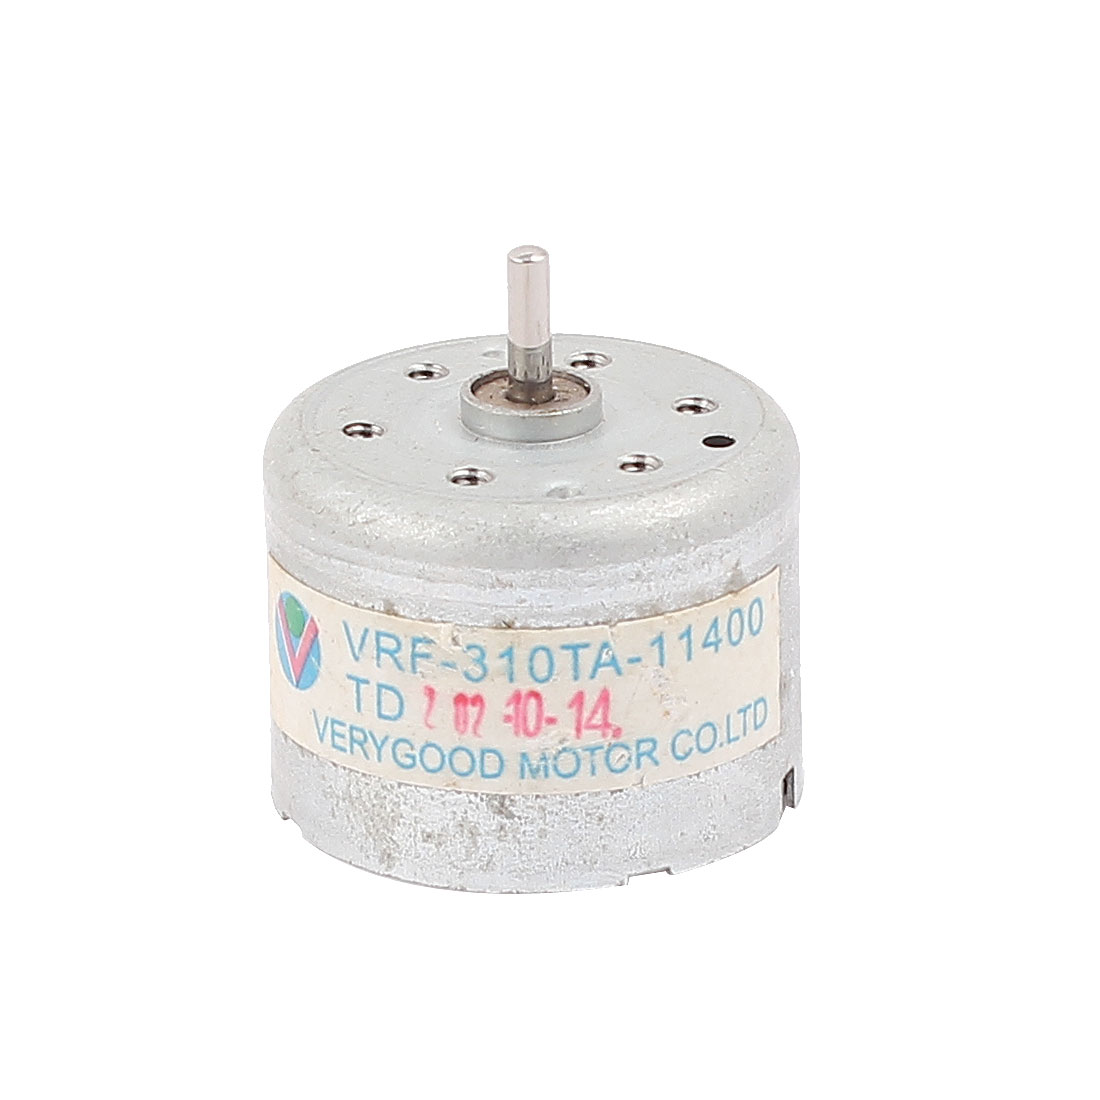 RF-310 DC 3.0V-9.0V 4200RPM Mini Motor for DVD CD Repair USB Fans